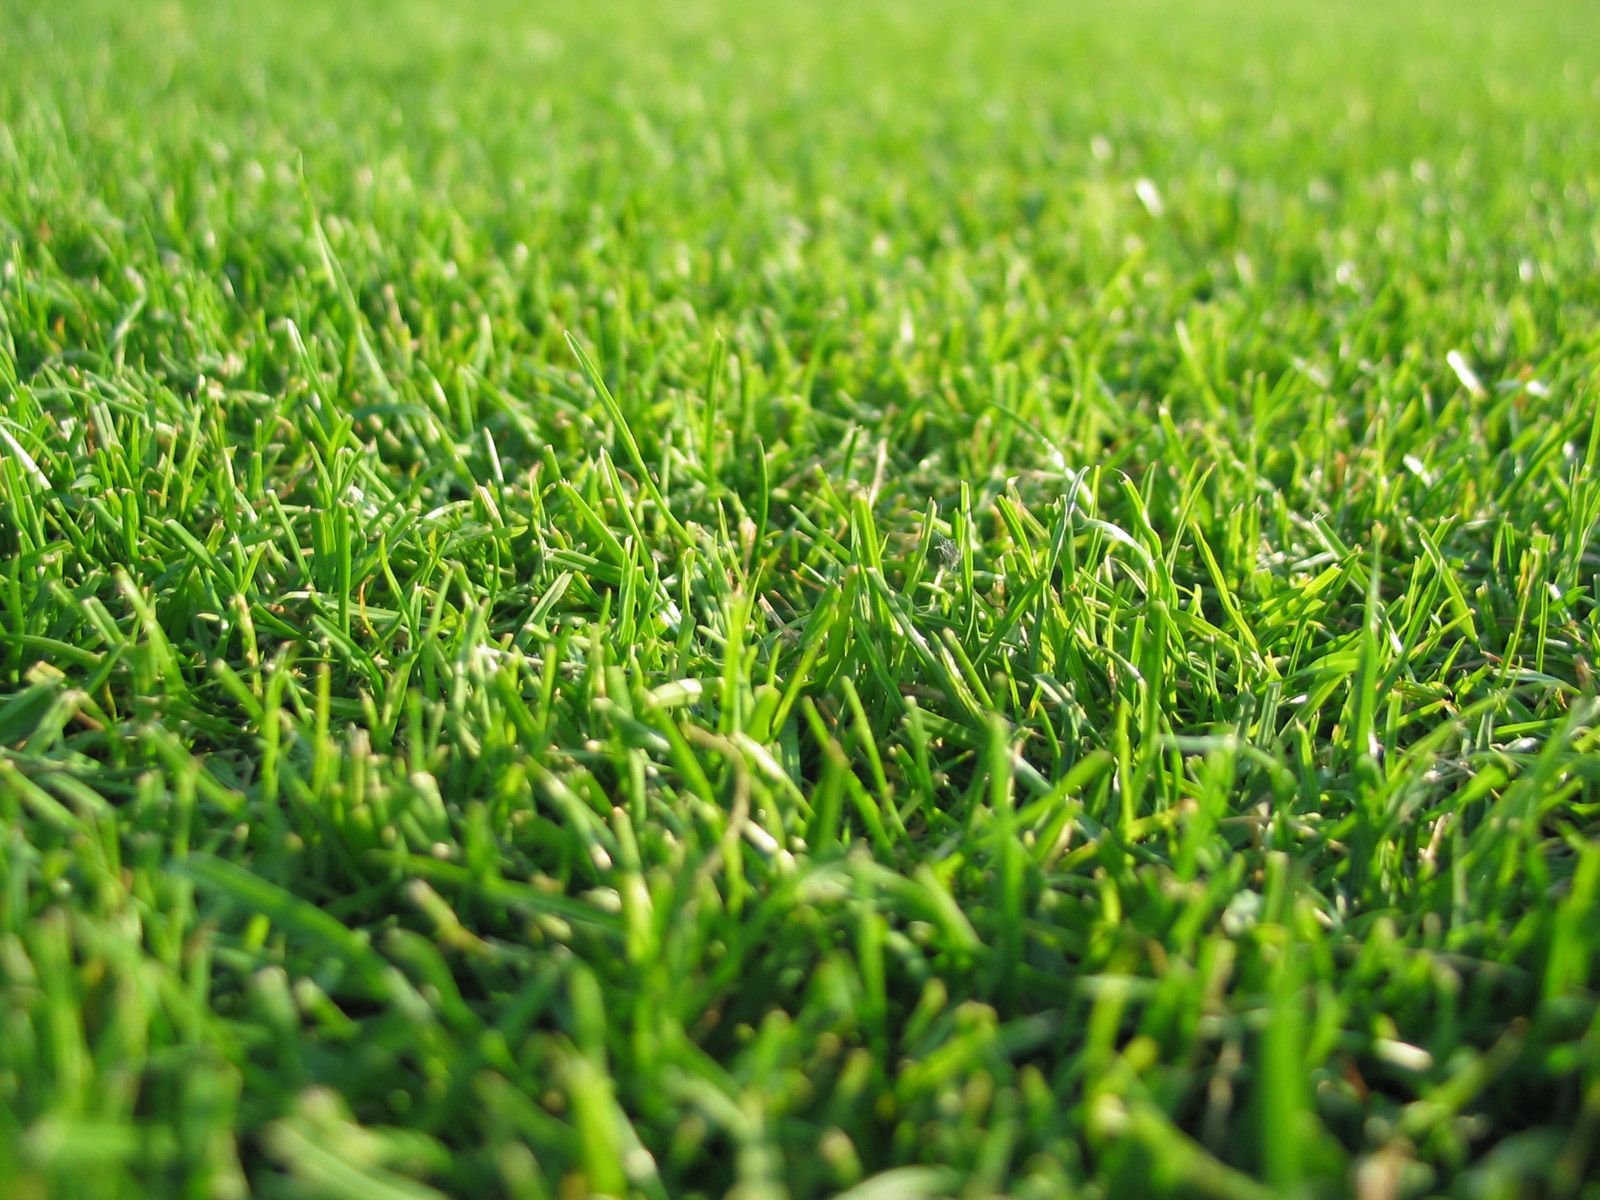 grass-wallpaper-hd-1-704234.jpg